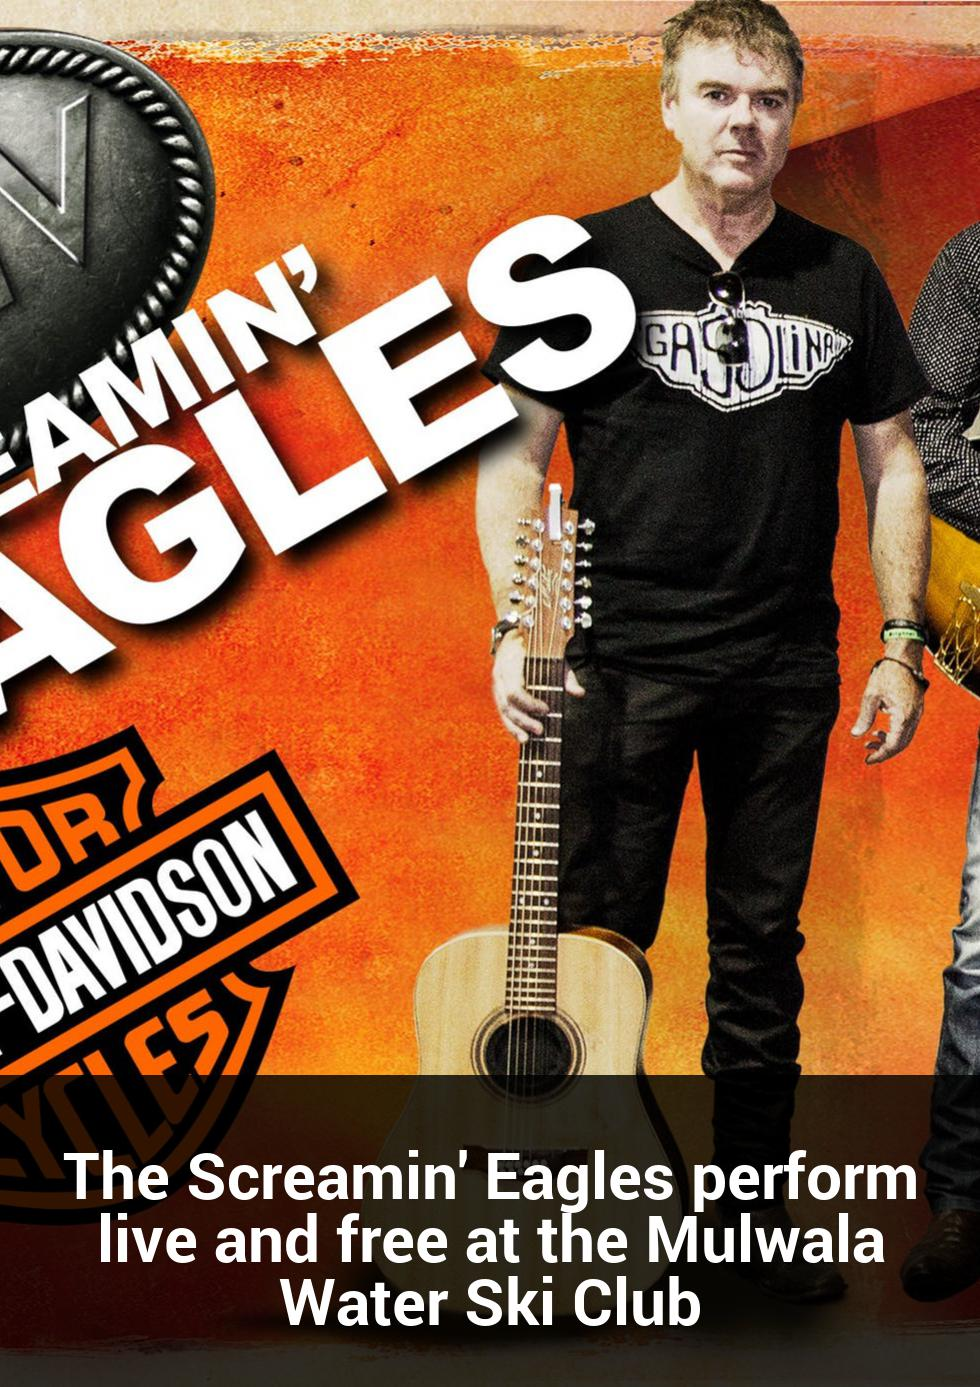 The Screamin' Eagles perform live and free at the Mulwala Water Ski Club at Mulwala Water Ski Club